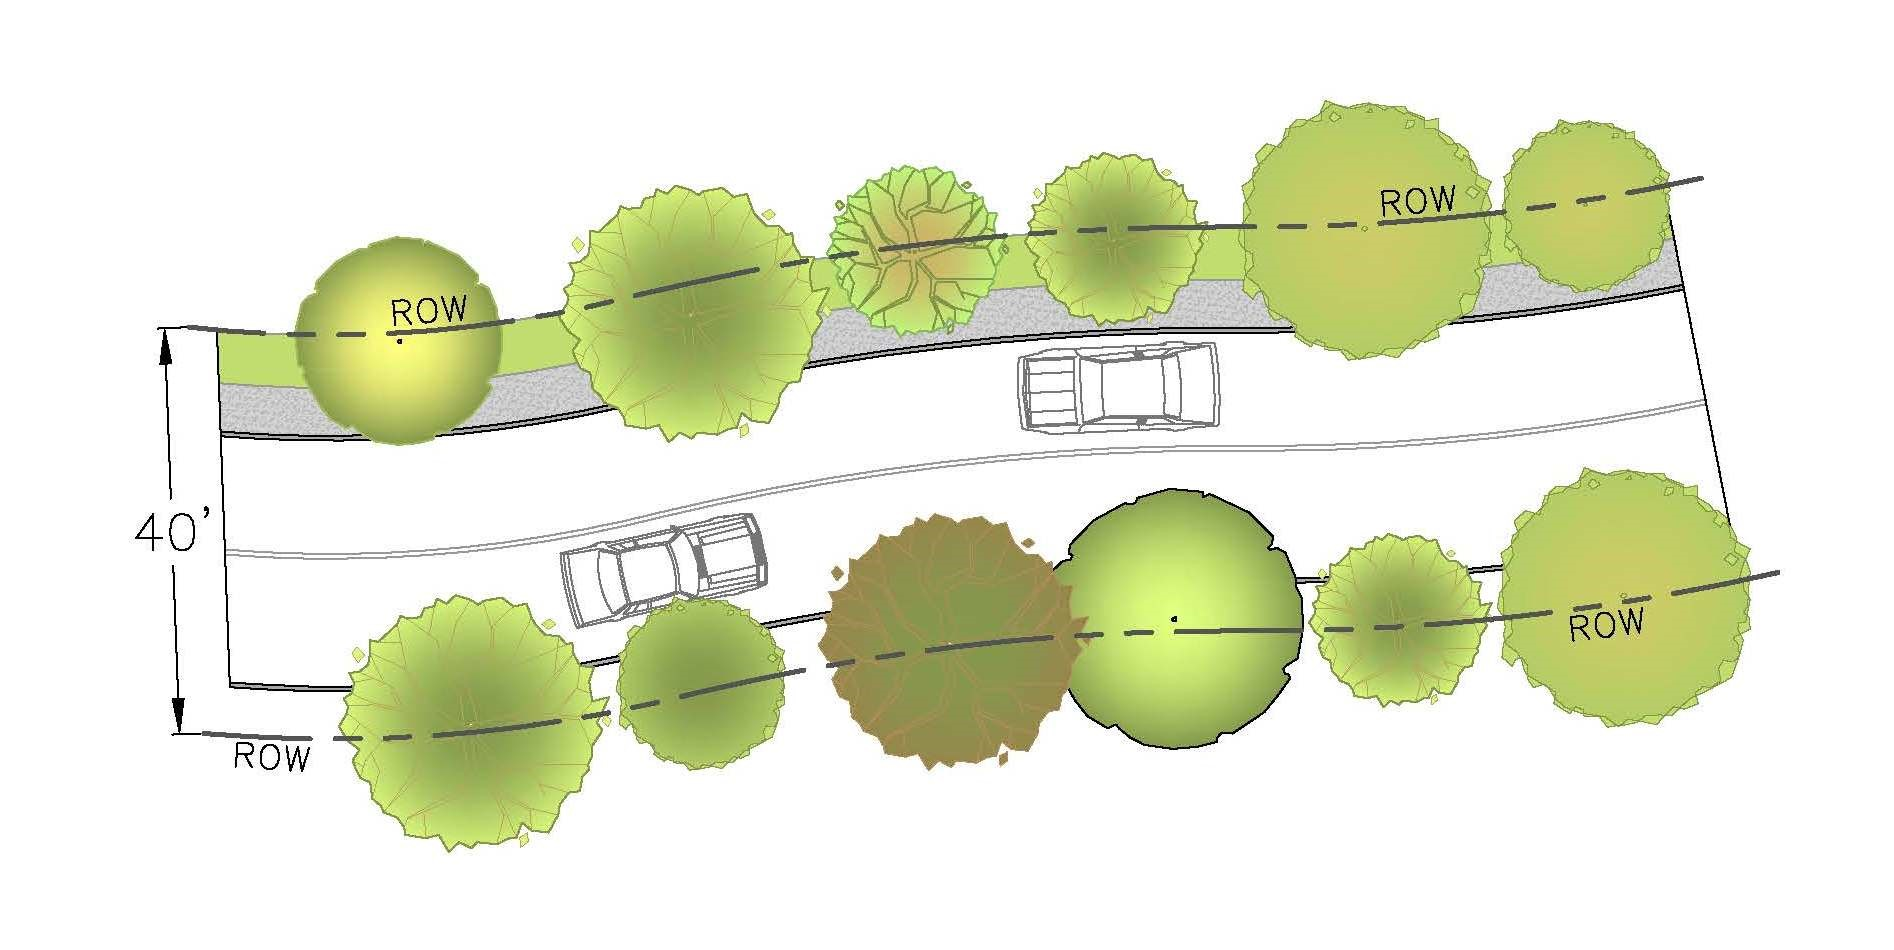 Large Trees on Both Sides of Road - Typical Plan